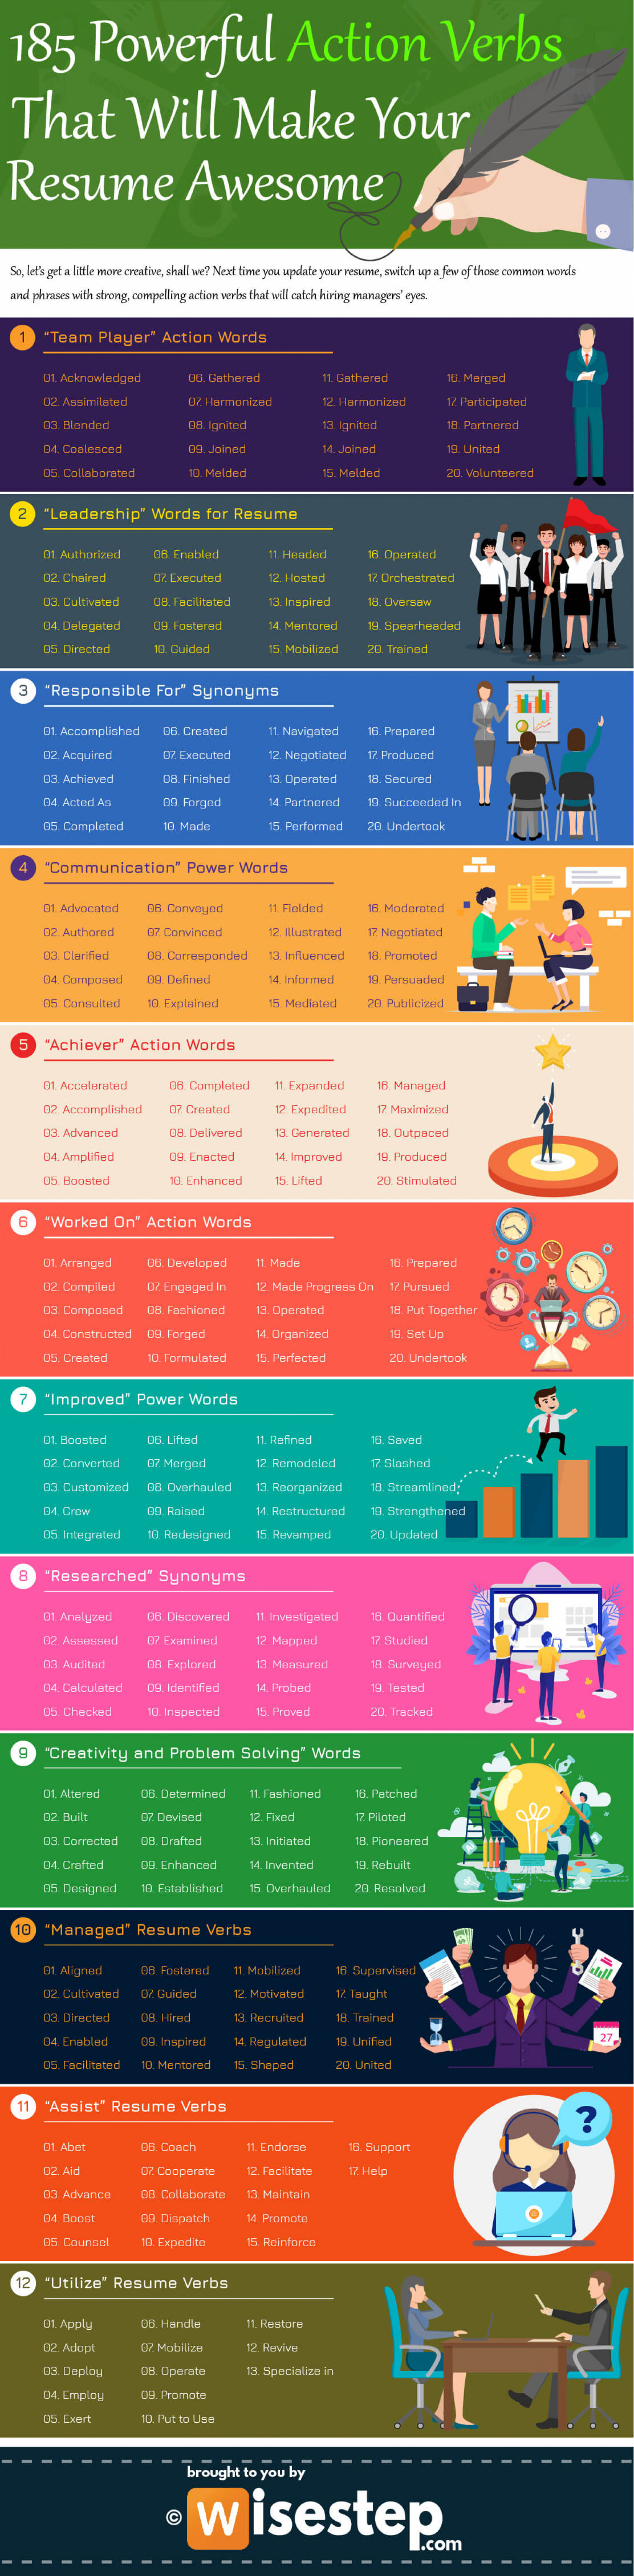 281 Powerful Verbs That Will Make Your Resume Awesome Infographic